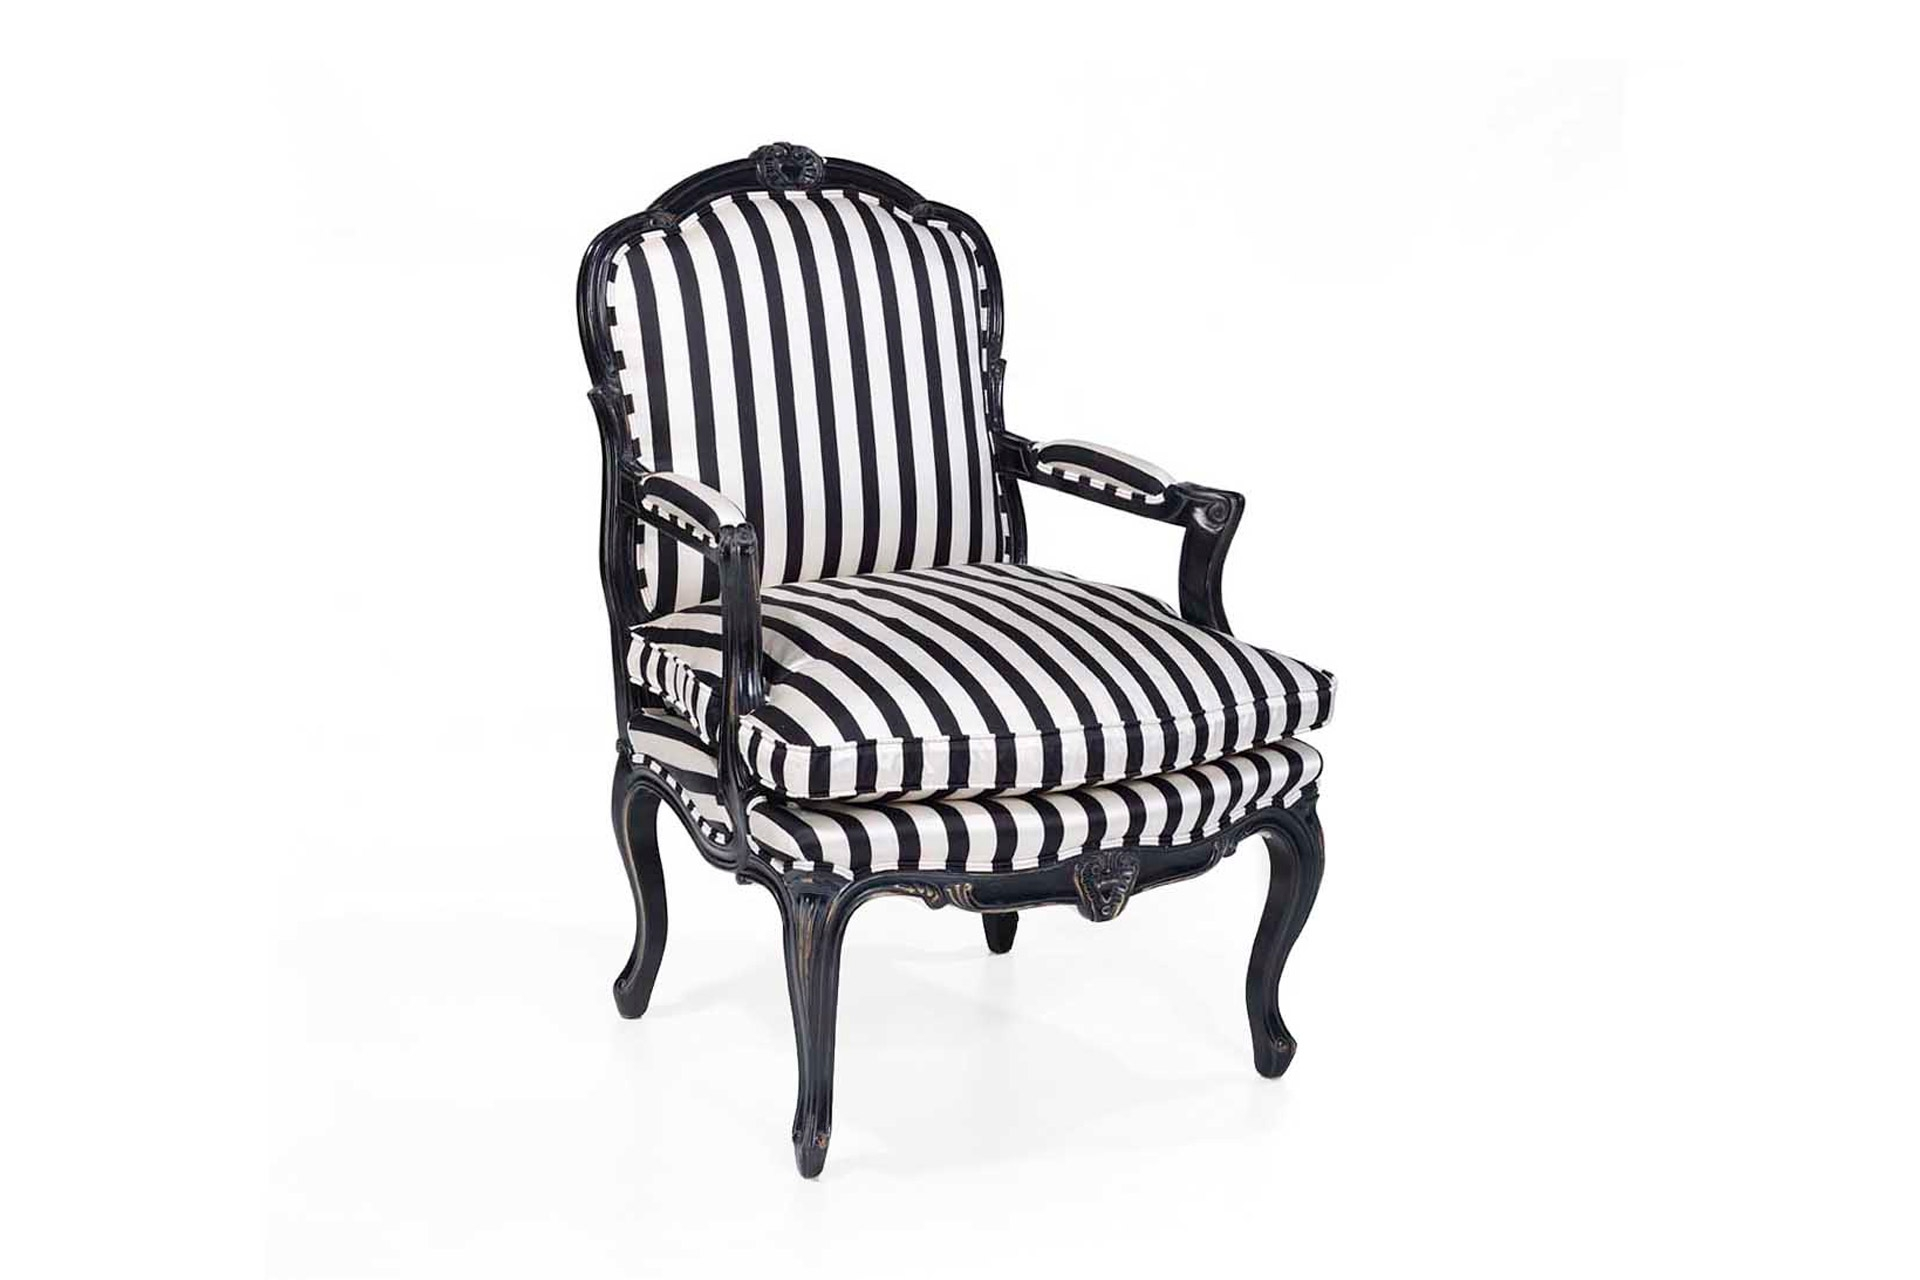 Upholstered Vanity Chairs For Bathroom. Image Result For Upholstered Vanity Chairs For Bathroom